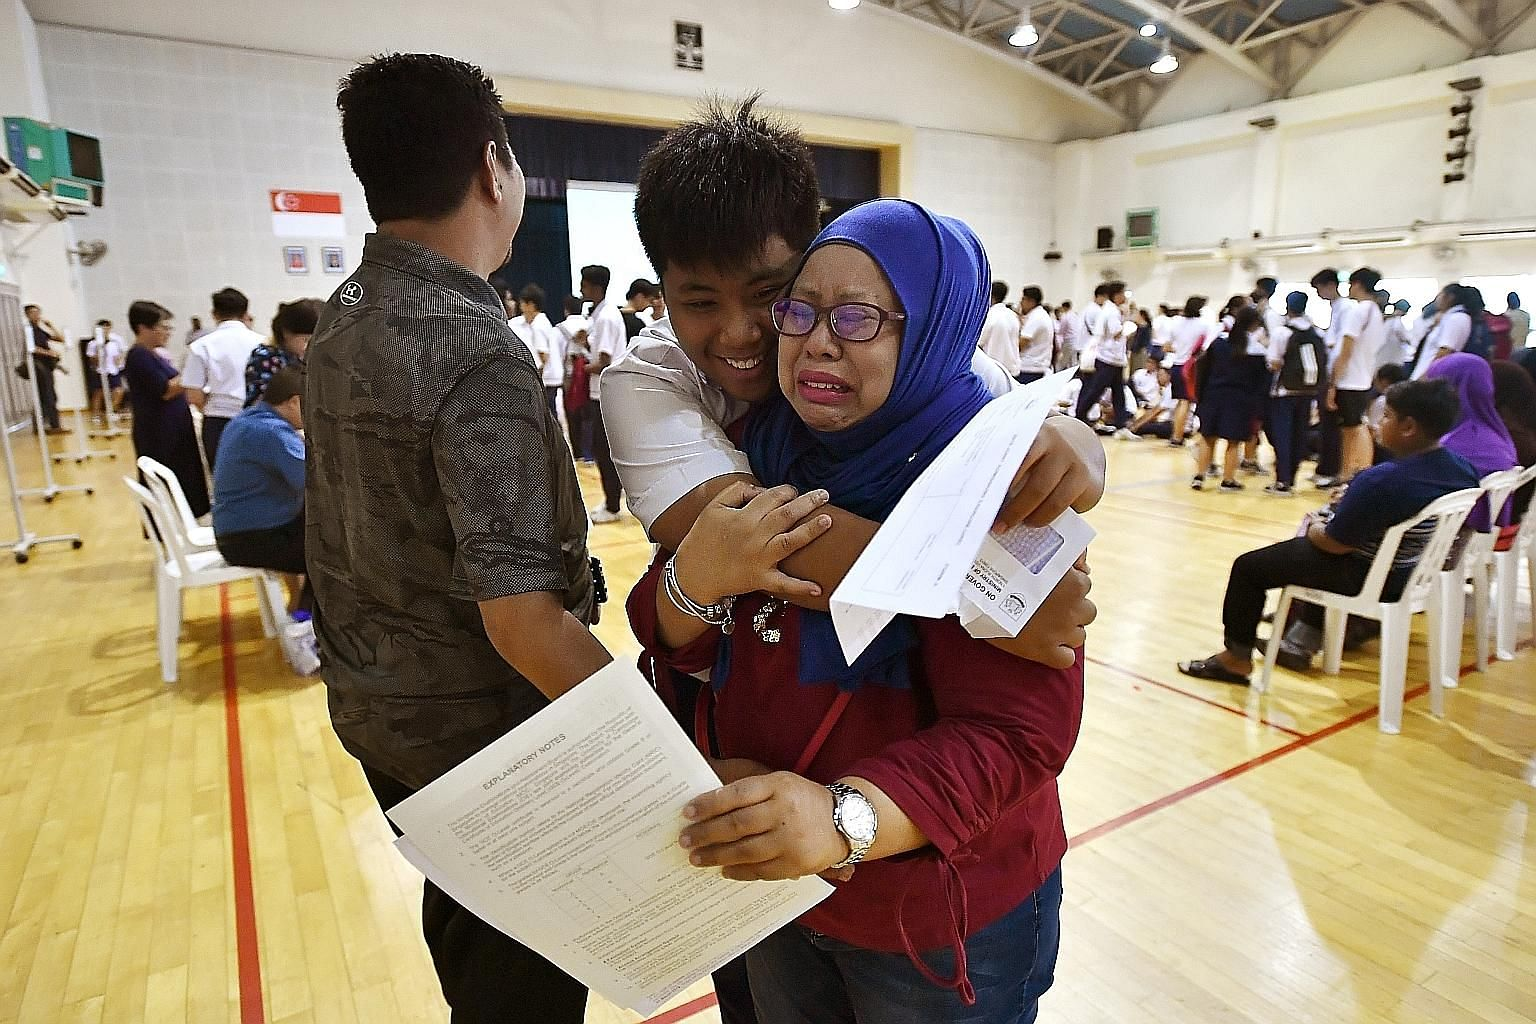 Norman Adli Ramli, 16, hugging his mother, Madam Norlizah Abdul Kahar, 40, a bank officer, after he received his O-level results at Serangoon Garden Secondary School yesterday. He did well enough to qualify for junior college. Students who sat last y